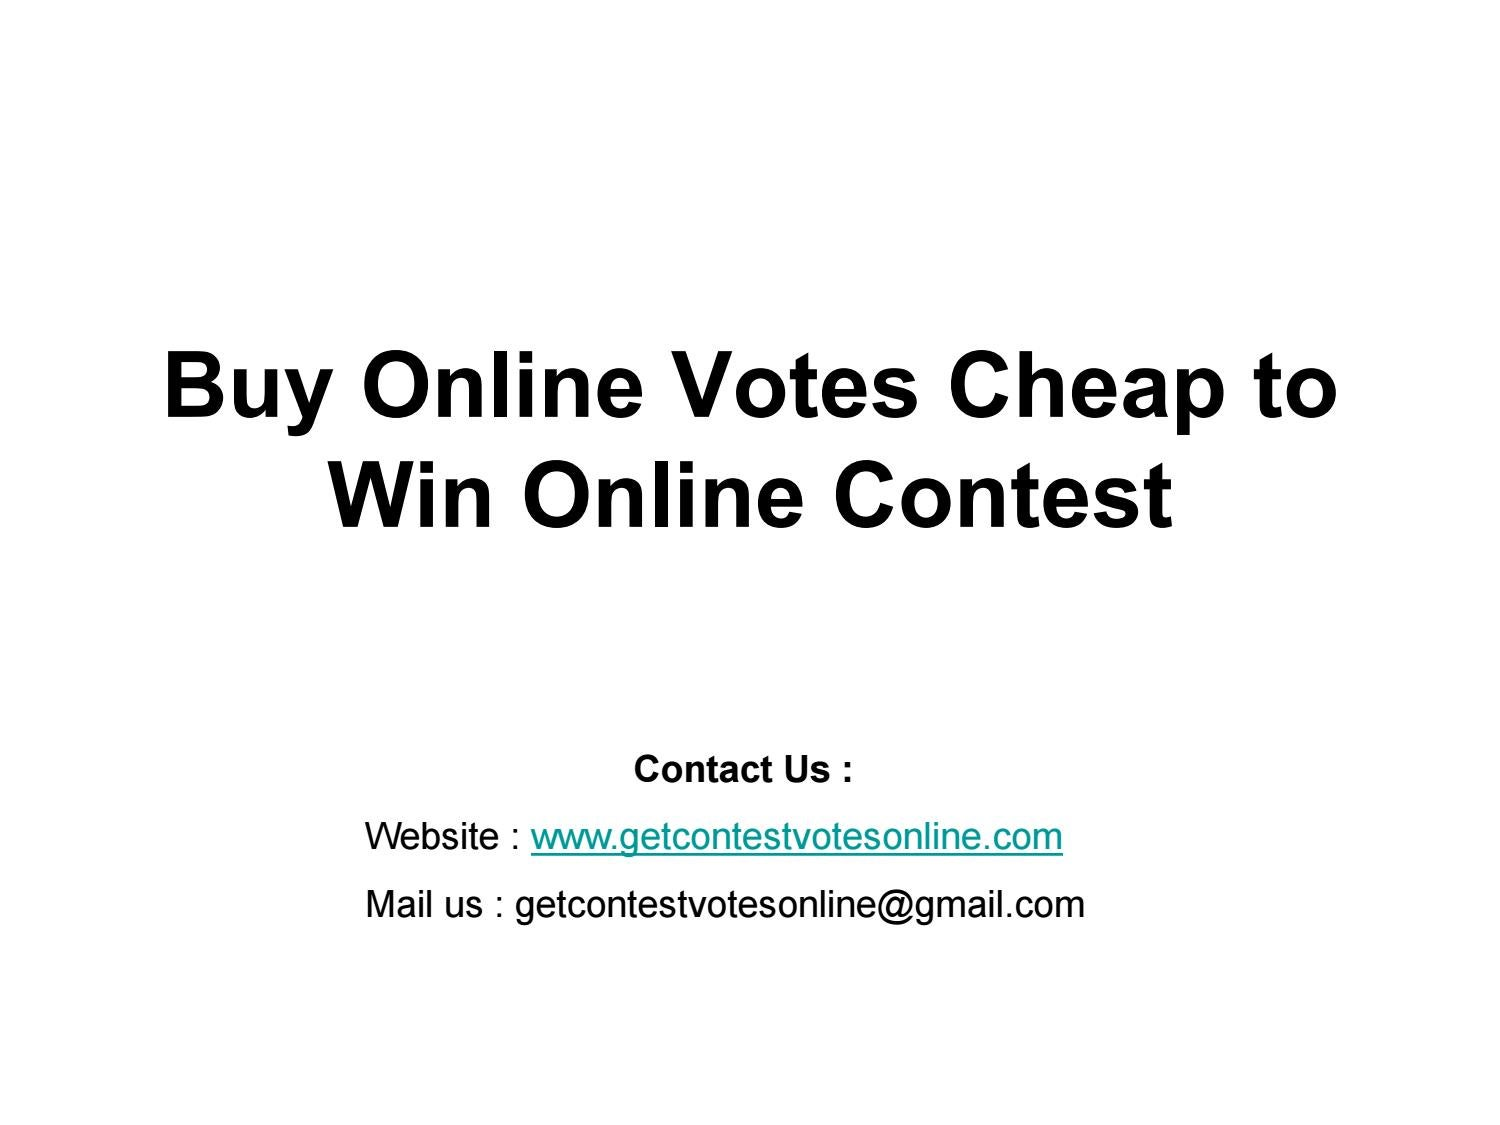 How to buy votes in Contact